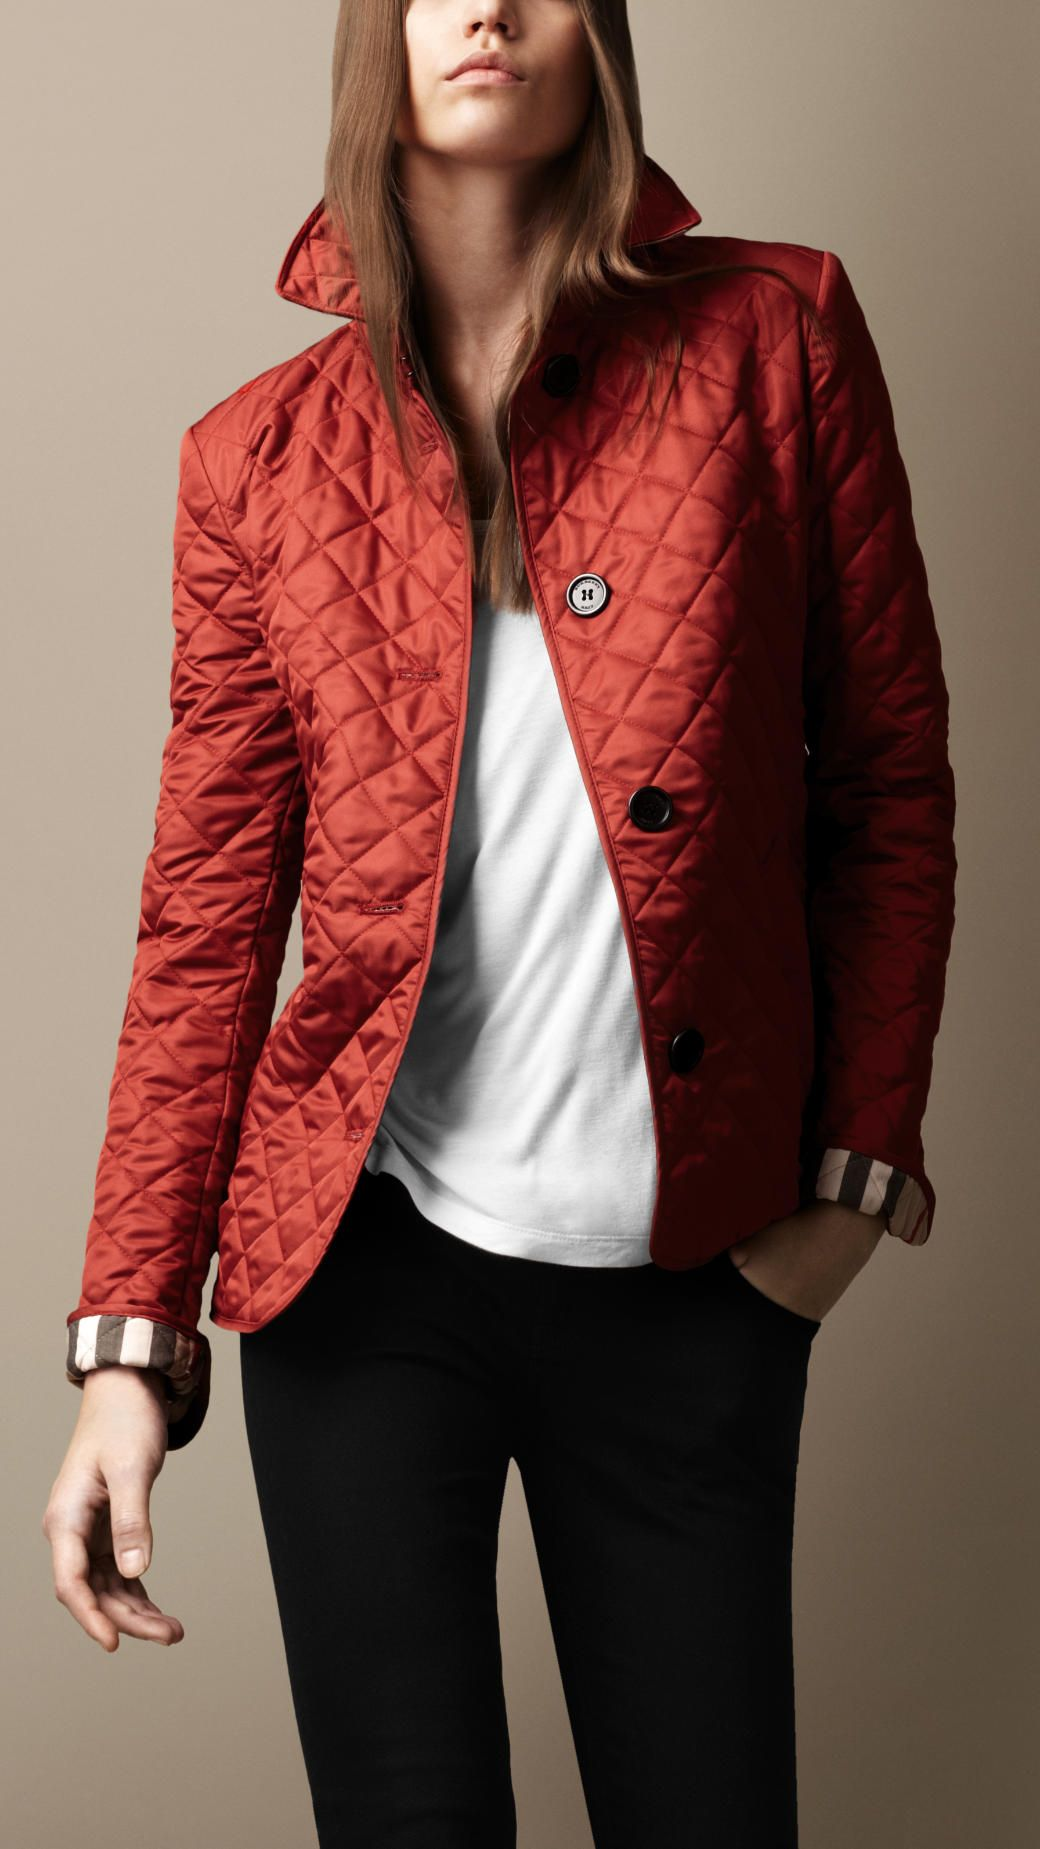 Red Burberry Quilted Jacket Things That Girls Like Pinterest